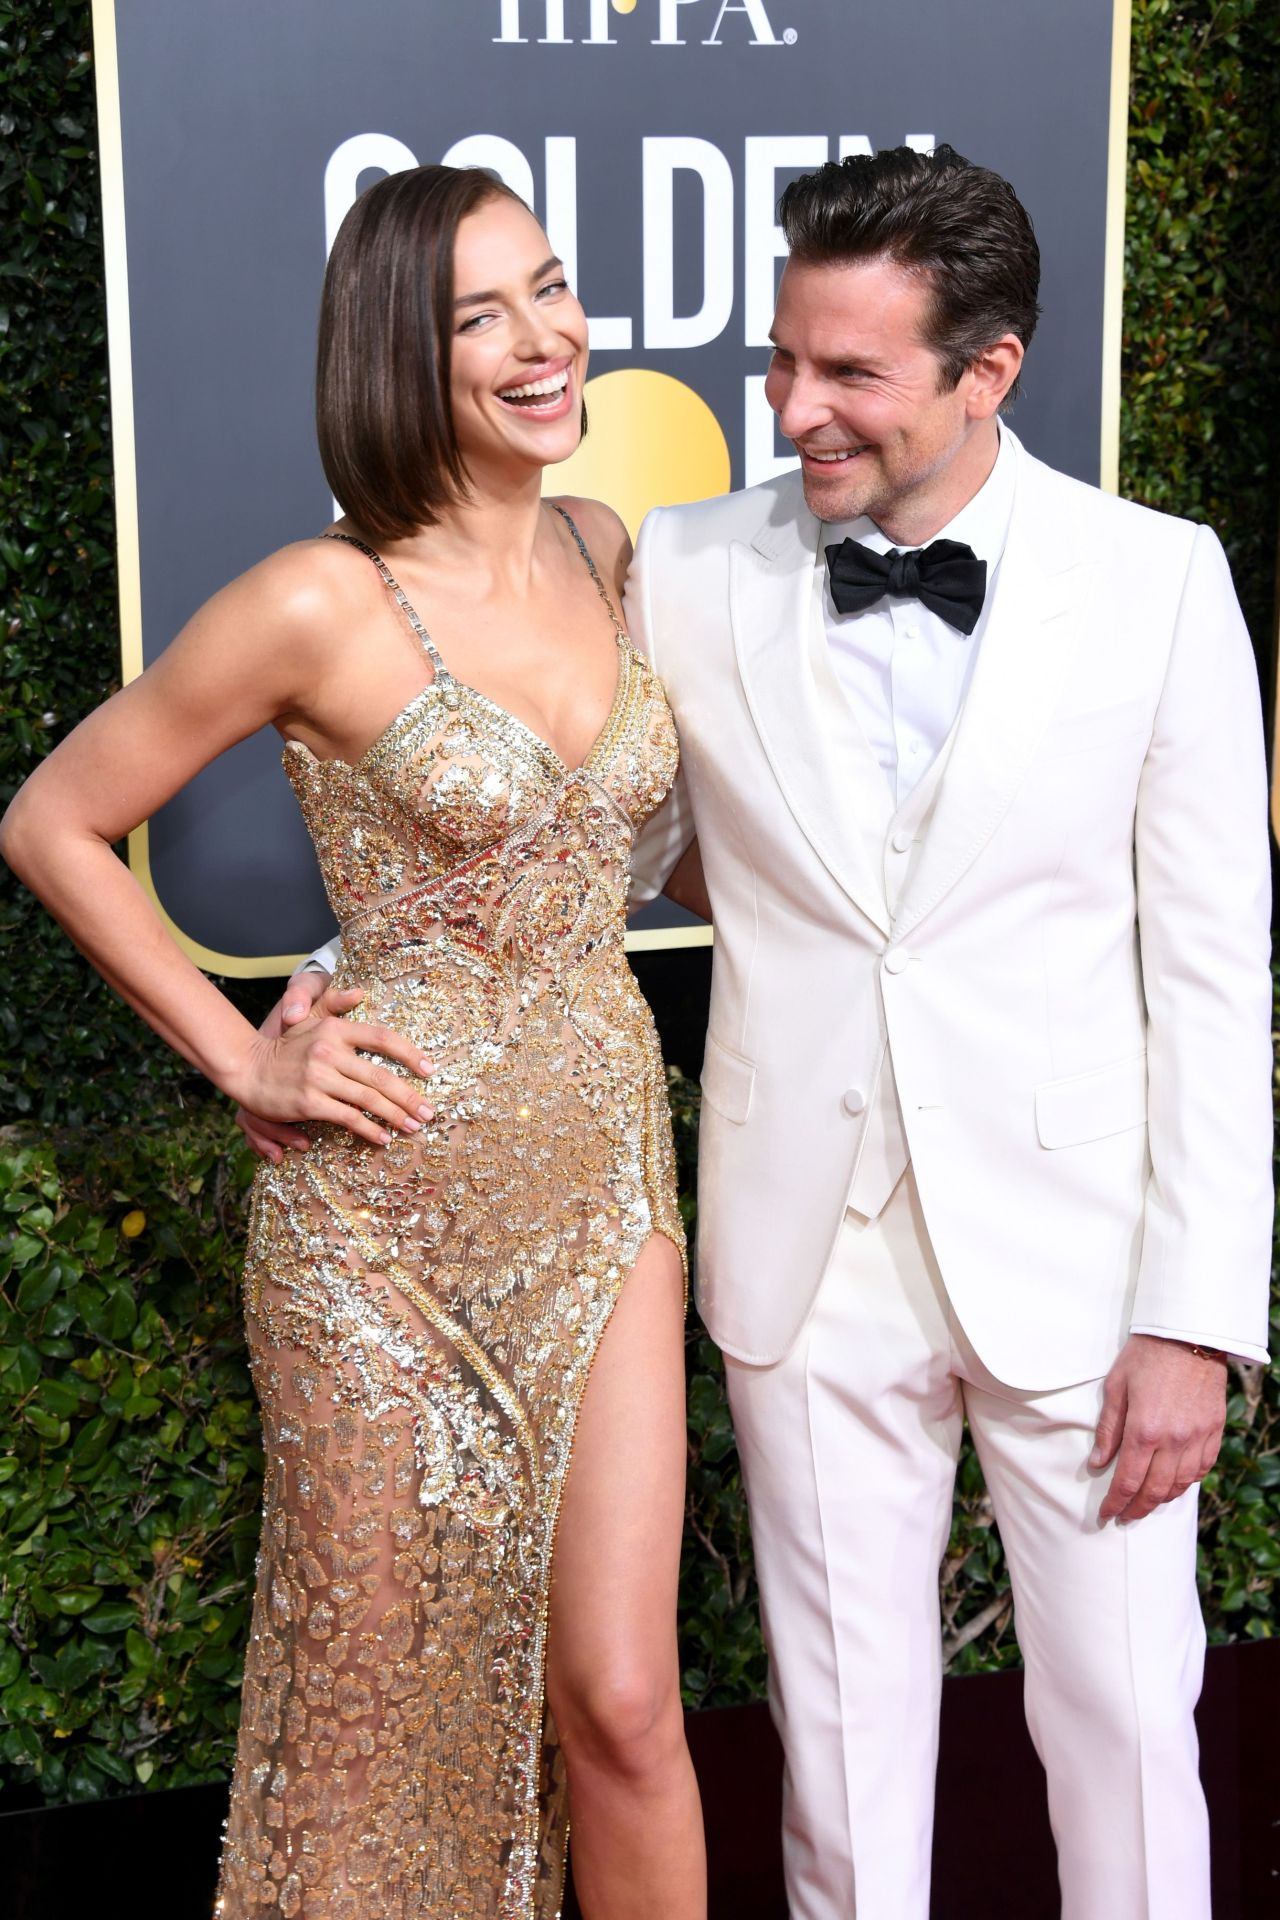 Bradley Cooper and Irina Shayk have reportedly split